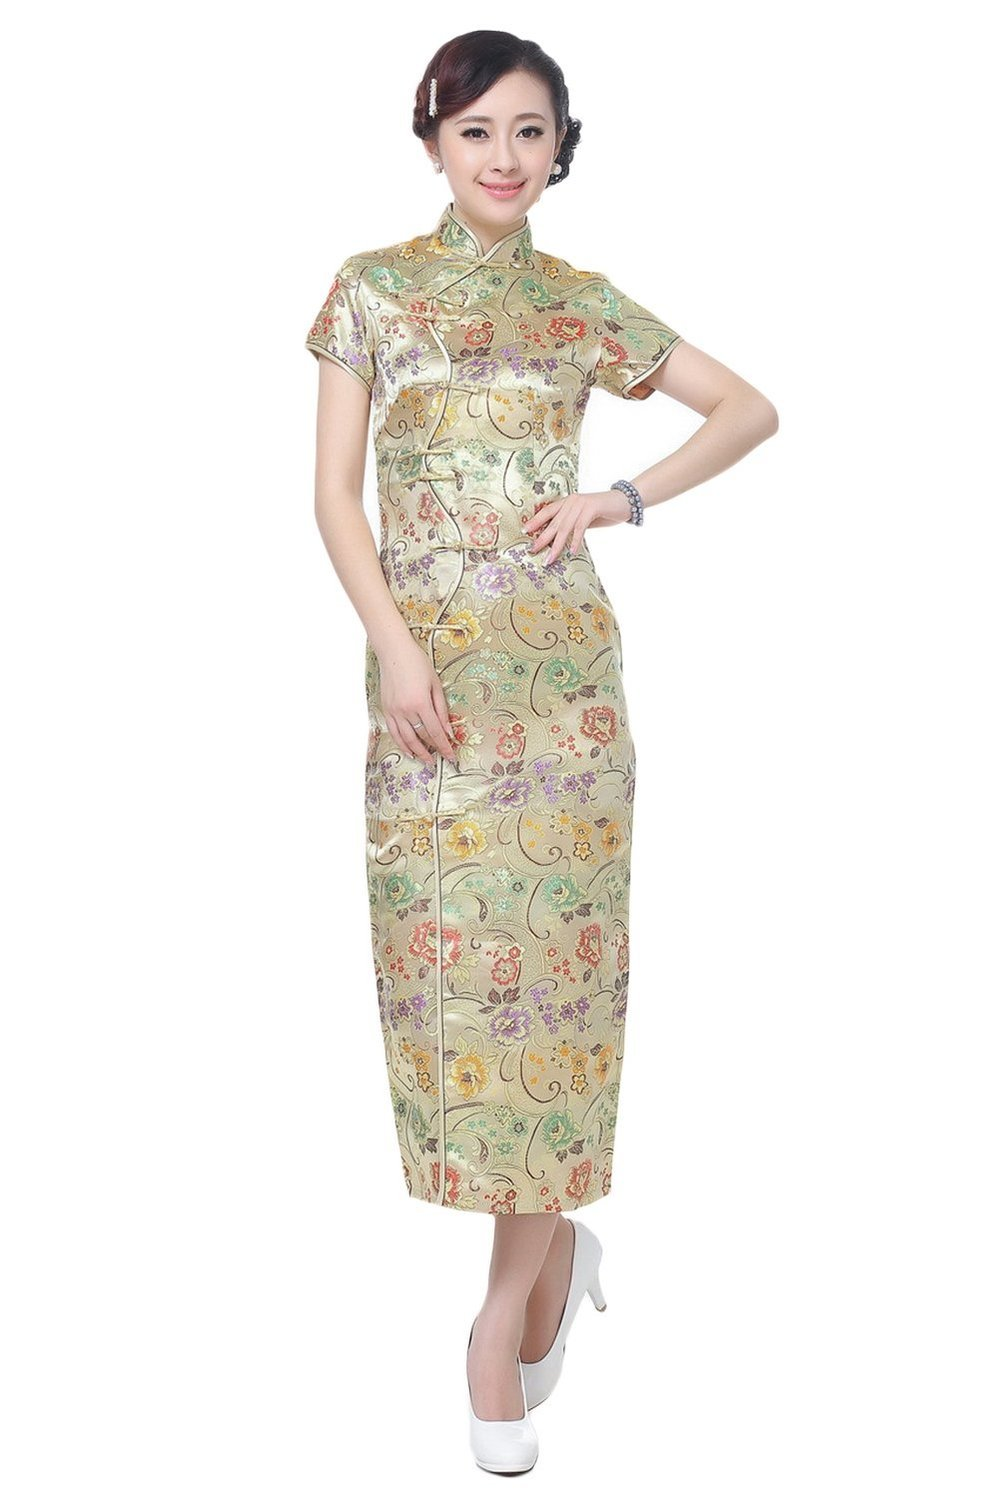 AvaCostume Women's Chinese Silk Floral Qipao Button Long Cocktail Dress Size US 6 Gold